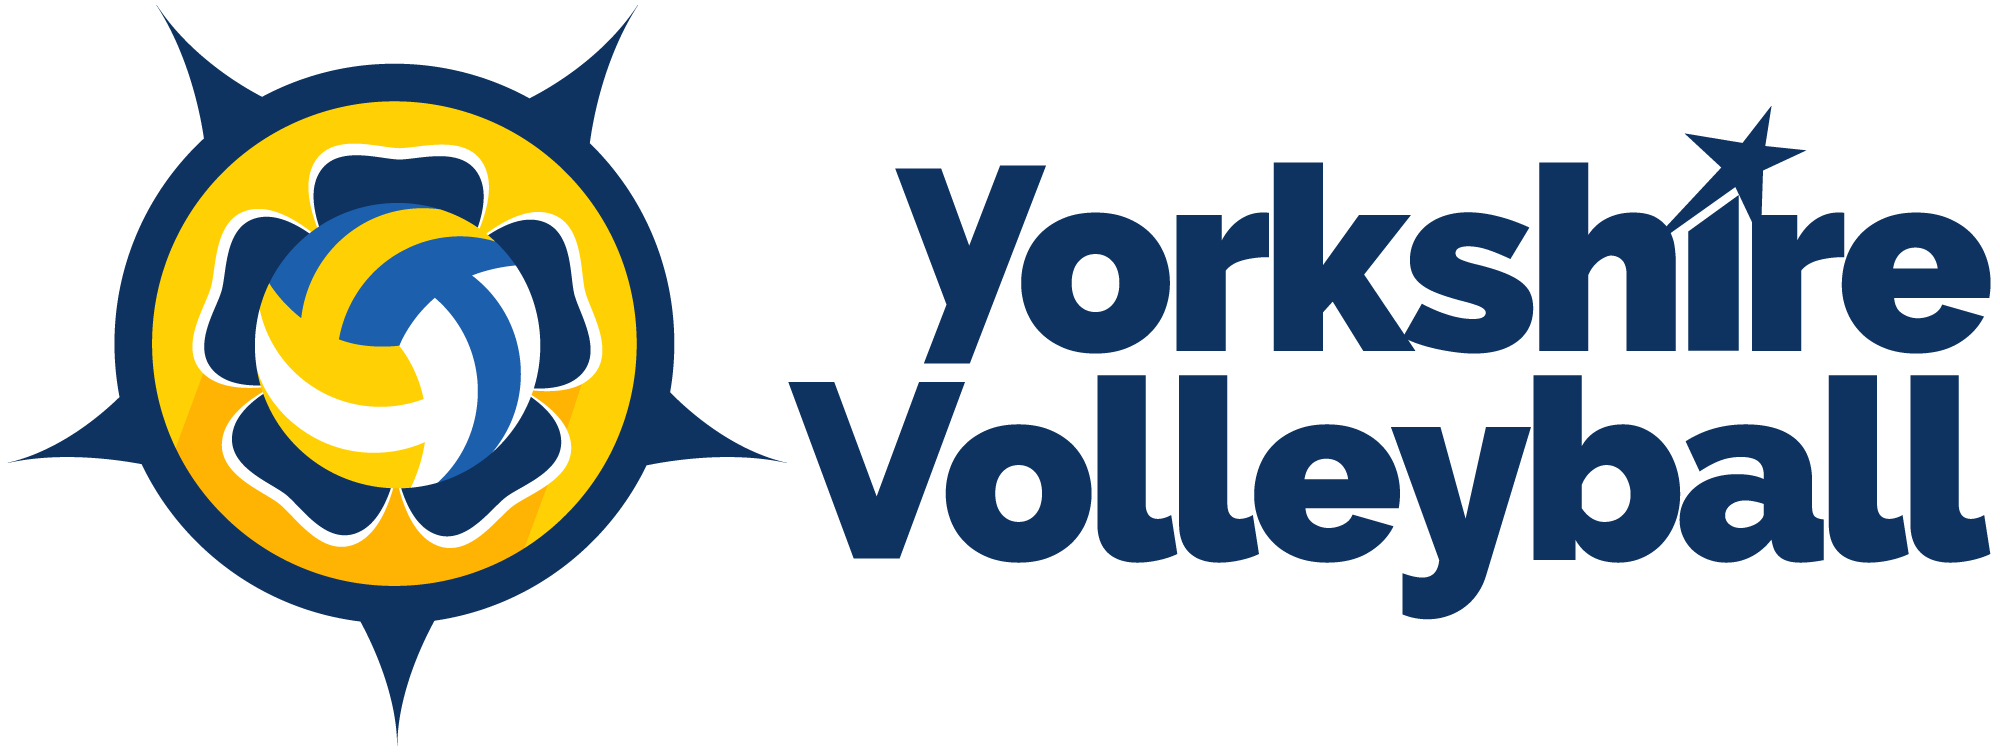 Yorkshire Volleyball Association